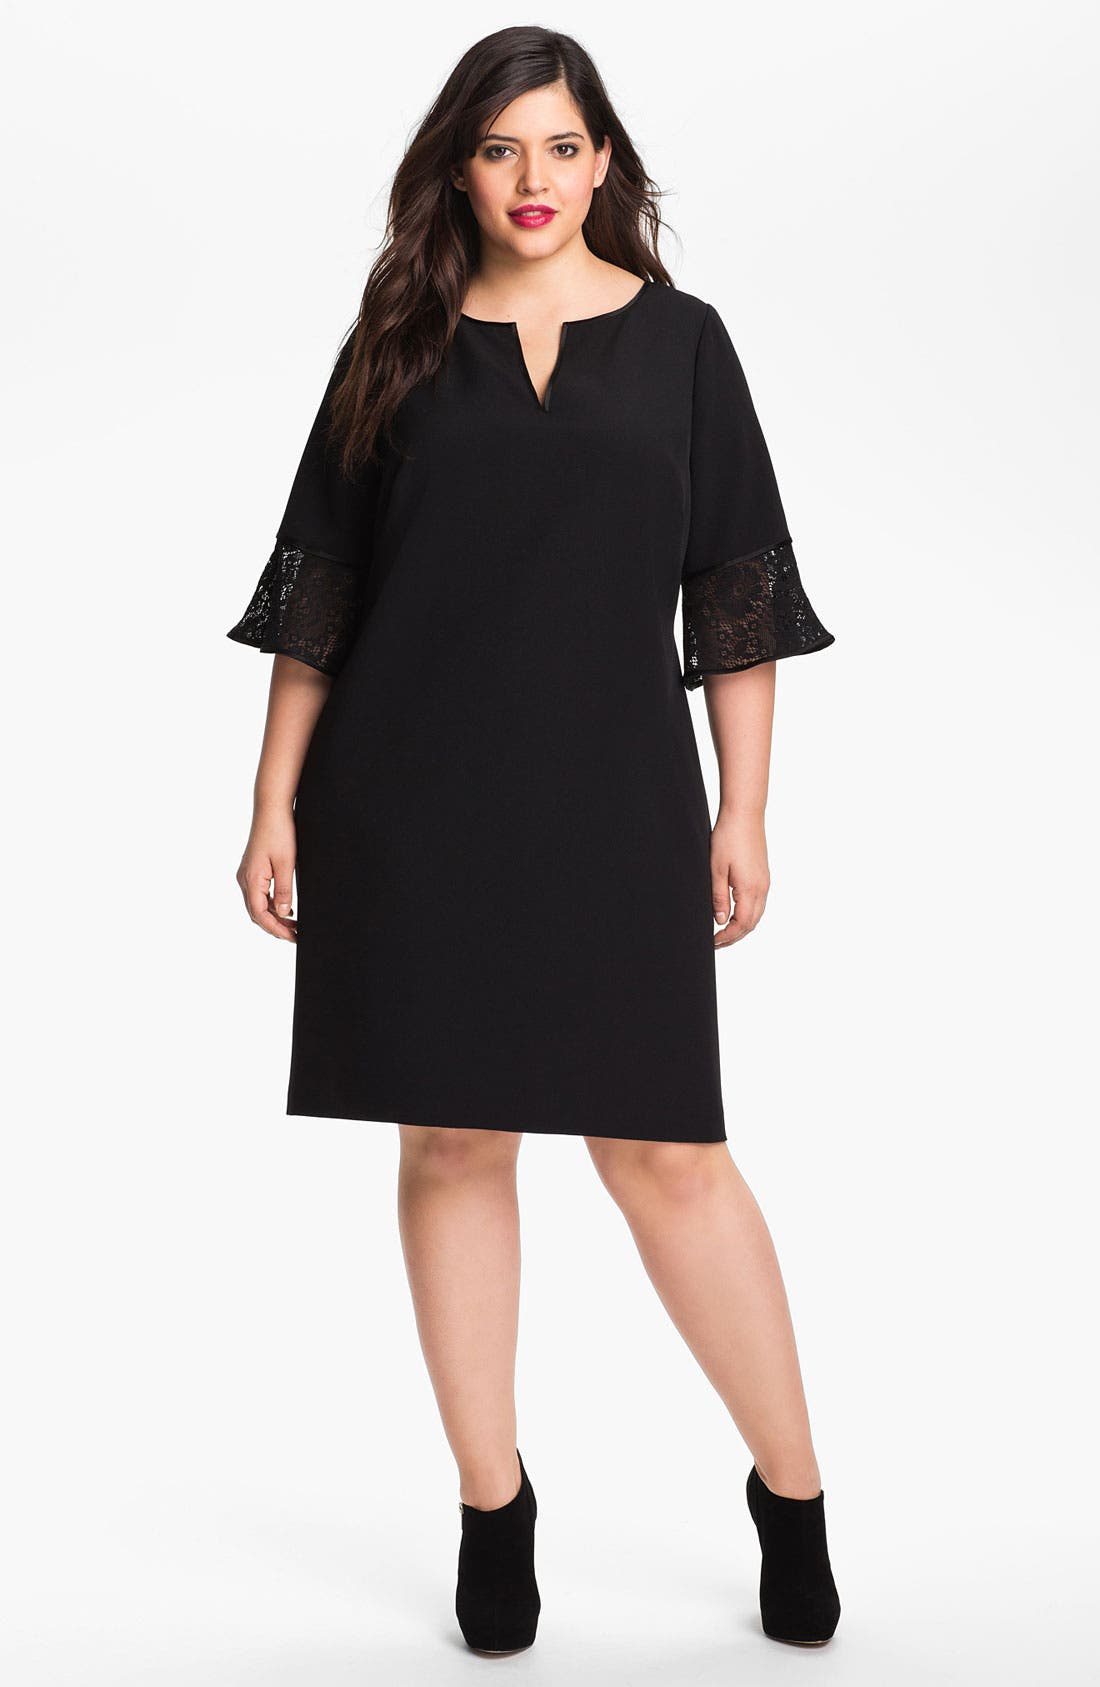 Alternate Image 1 Selected - Adrianna Papell Crepe Shift Dress (Plus Size)